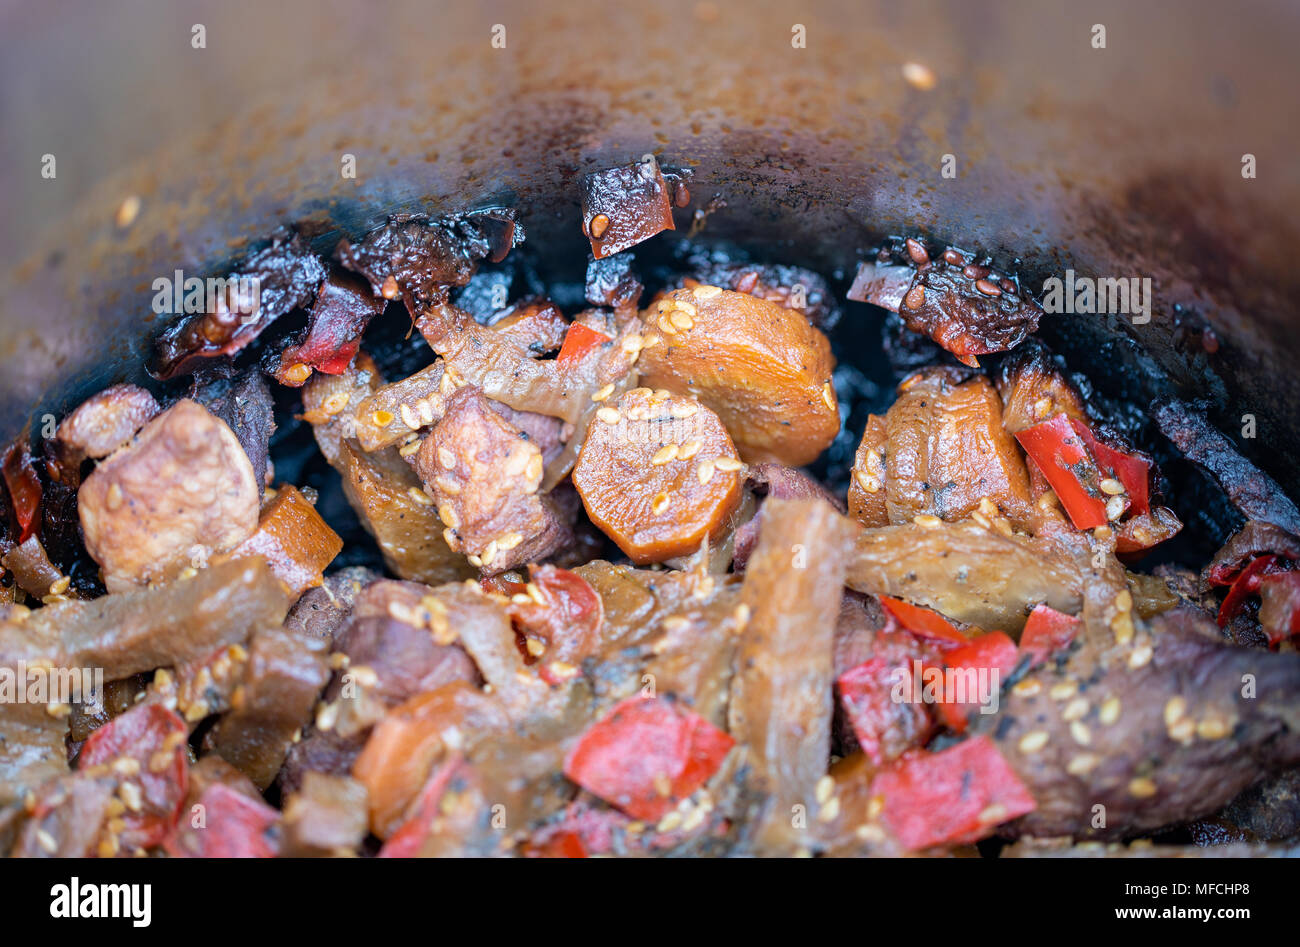 Burned dish in a pot. Unattended meal left on fire. Damage and loss - inattention. - Stock Image